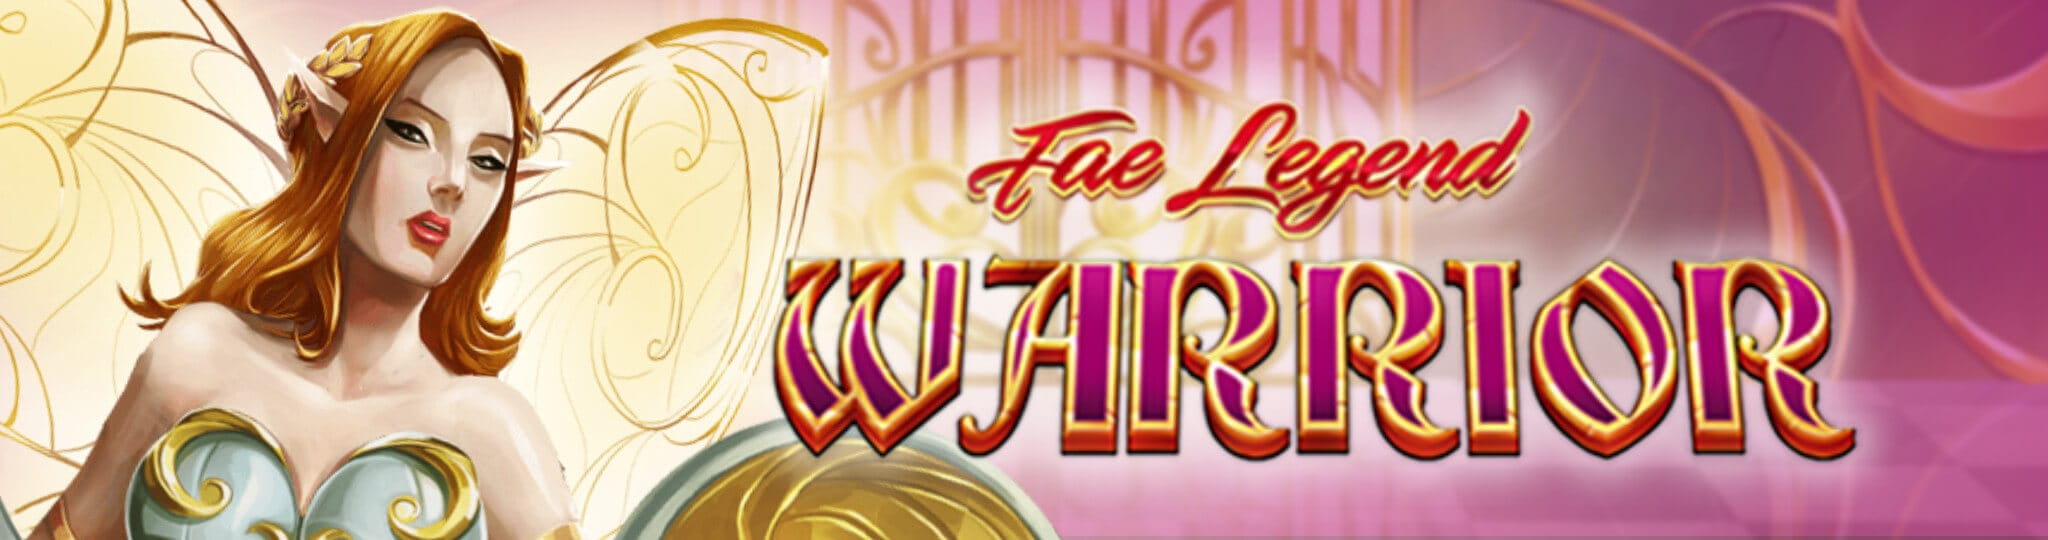 Fae Legend Warrior Jackpot Logo